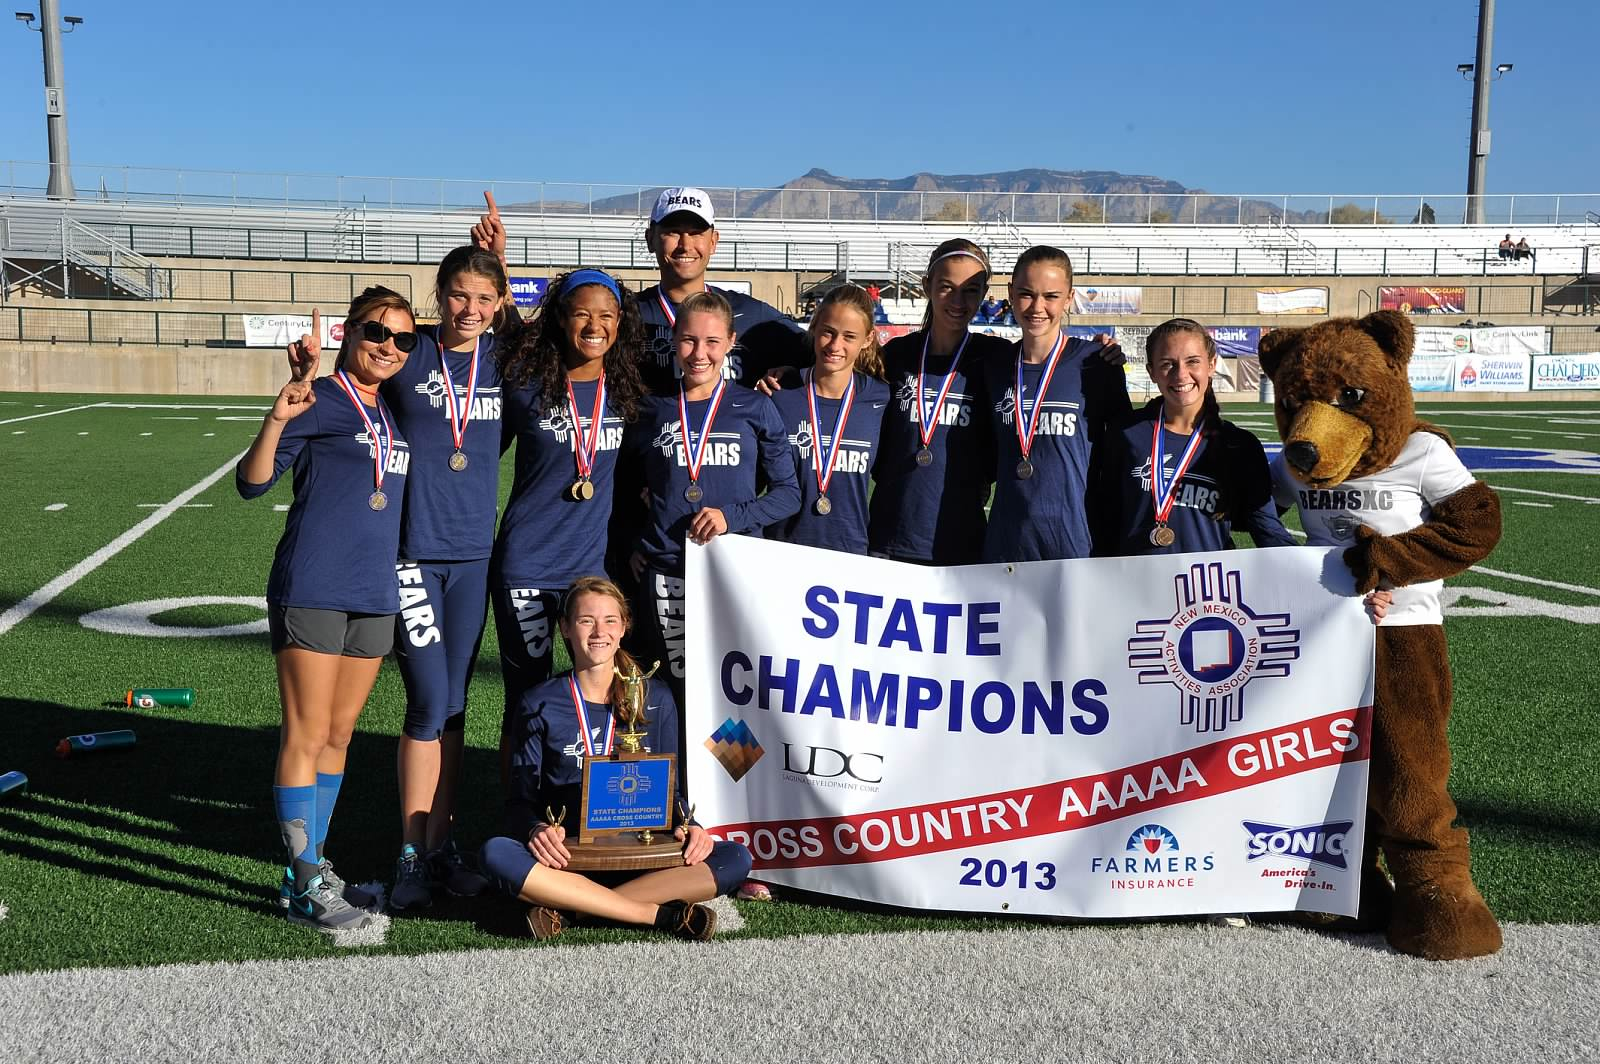 STATE CHAMPS - 2013